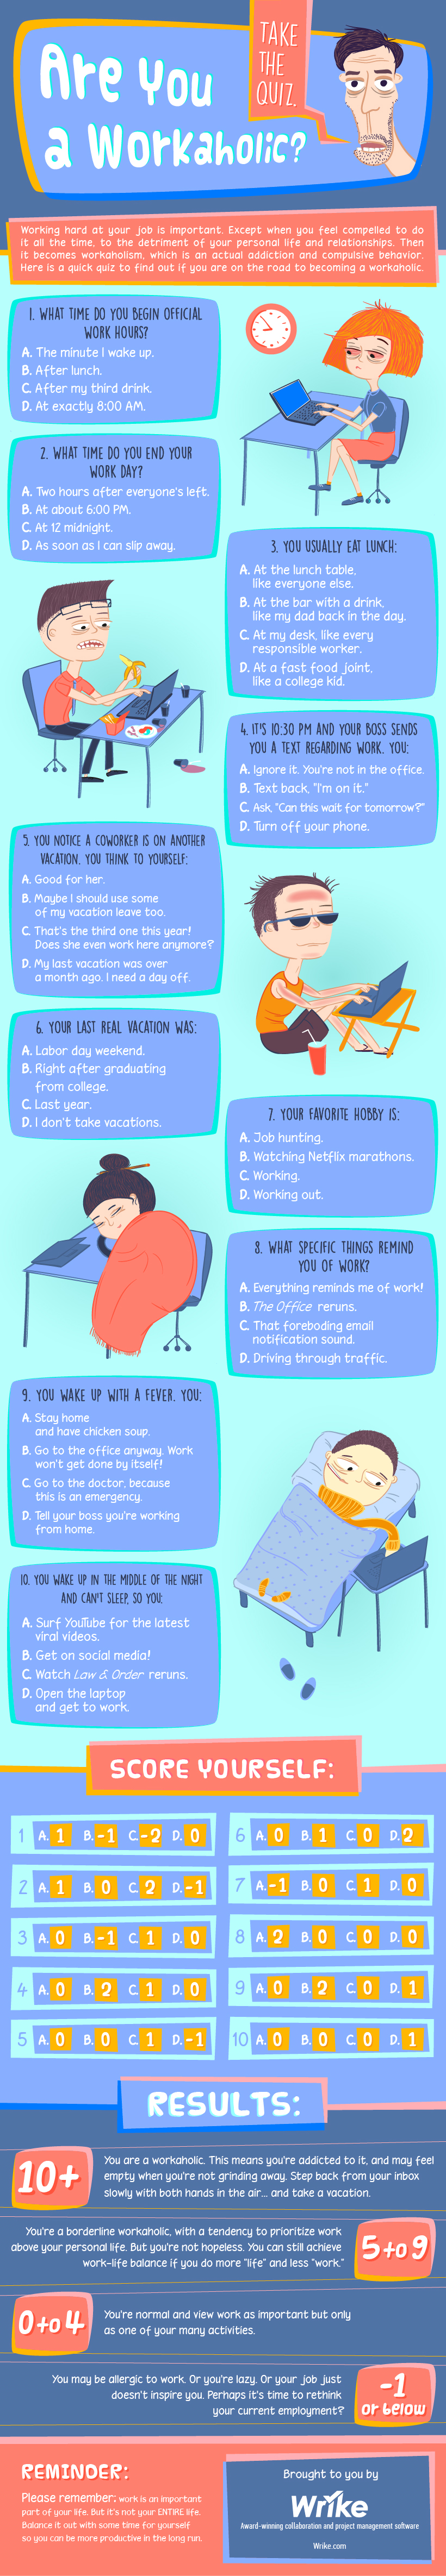 How to Find Out If You're a Workaholic (#Infographic)